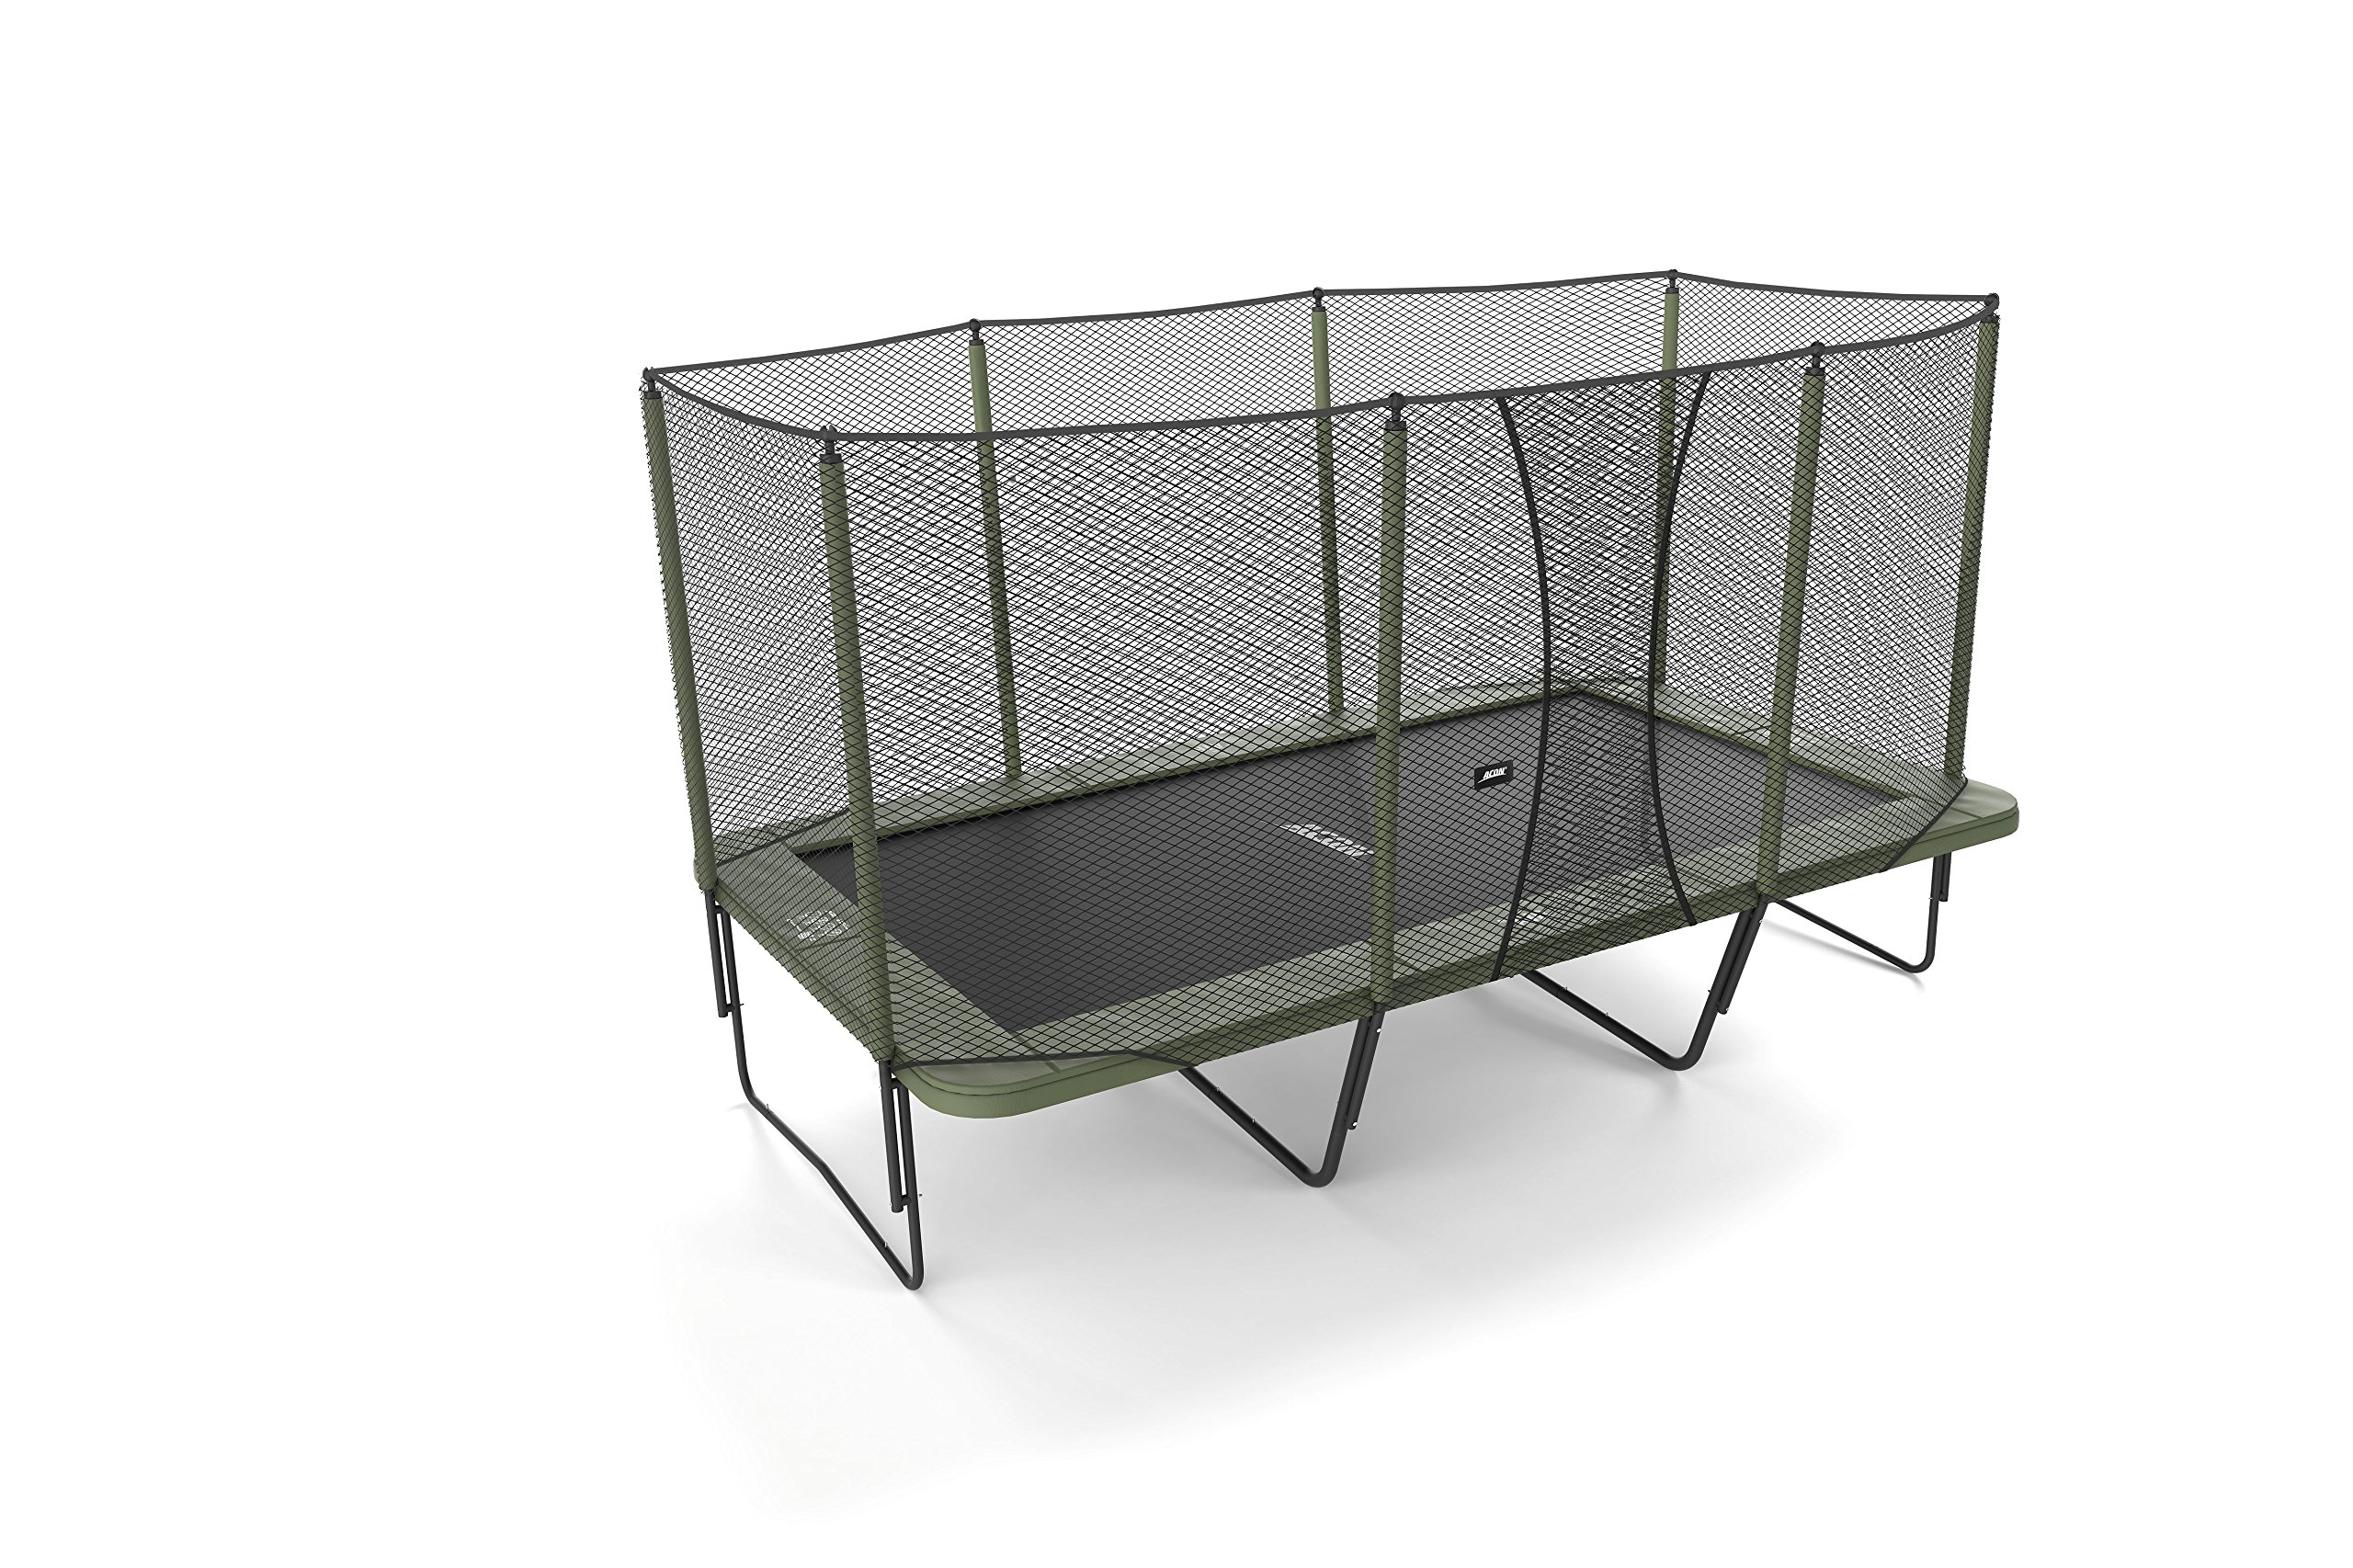 ACON Air 16 Sport Trampoline with Enclosure by Acon